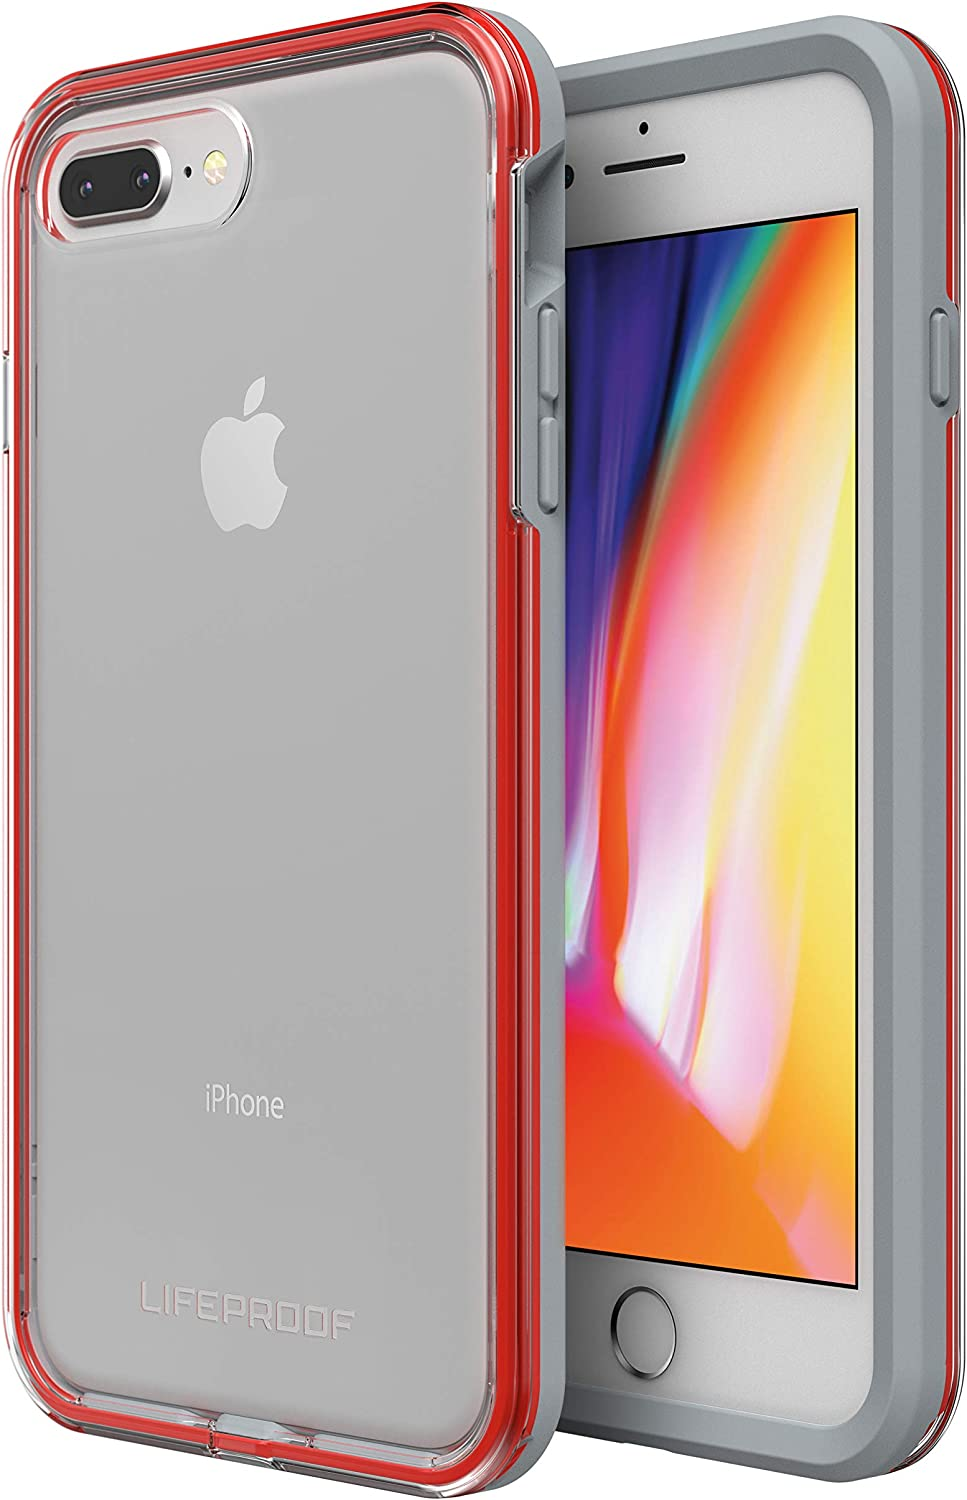 LifeProof SLAM Series Case for iPhone 8 Plus & 7 Plus (ONLY) - Retail Packaging - Lava Chaser (Clear/Cherry Tomato/Sleet) (77-57420)